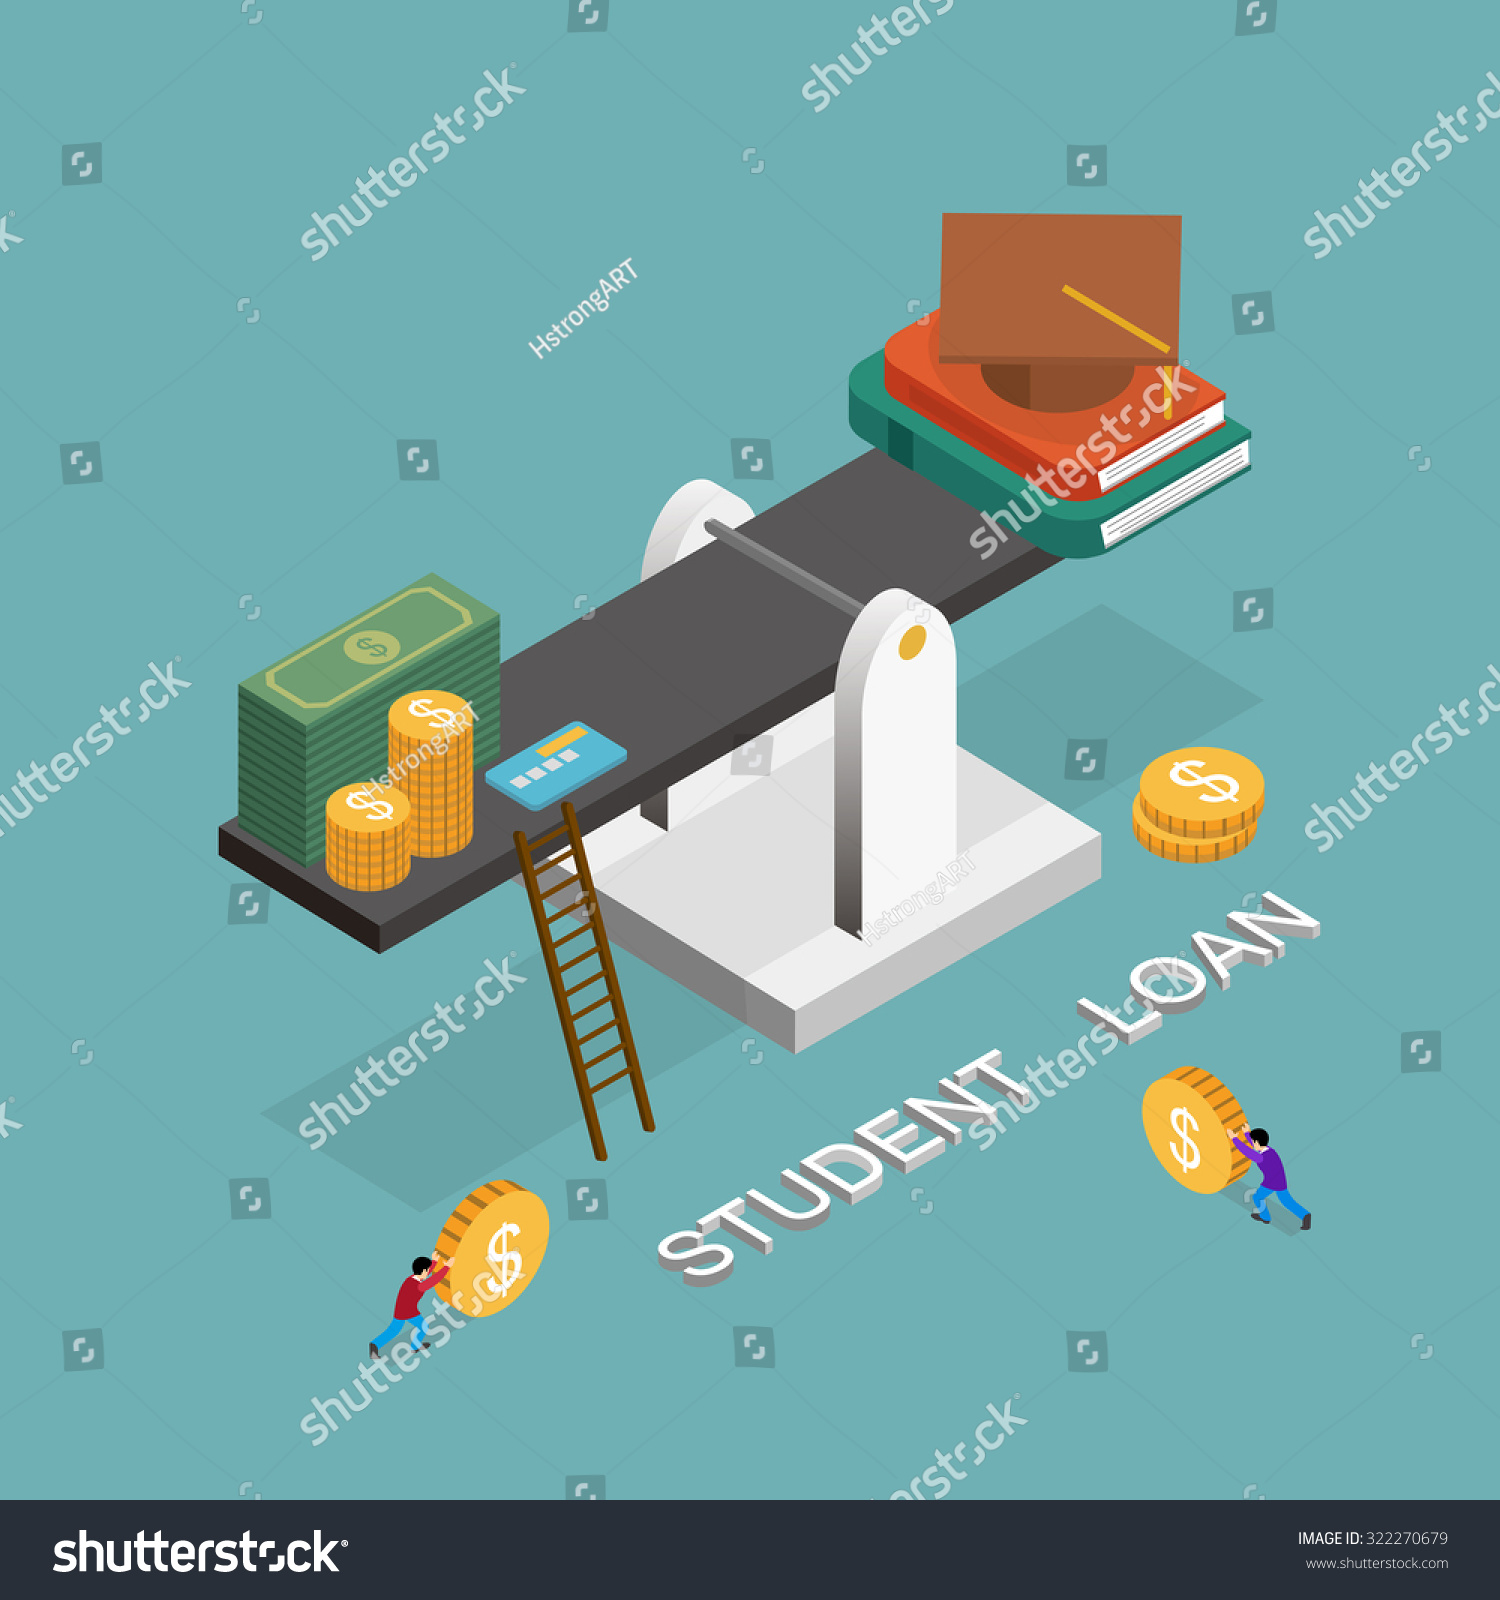 Student Loan Concept In 3d Isometric Flat Design Stock